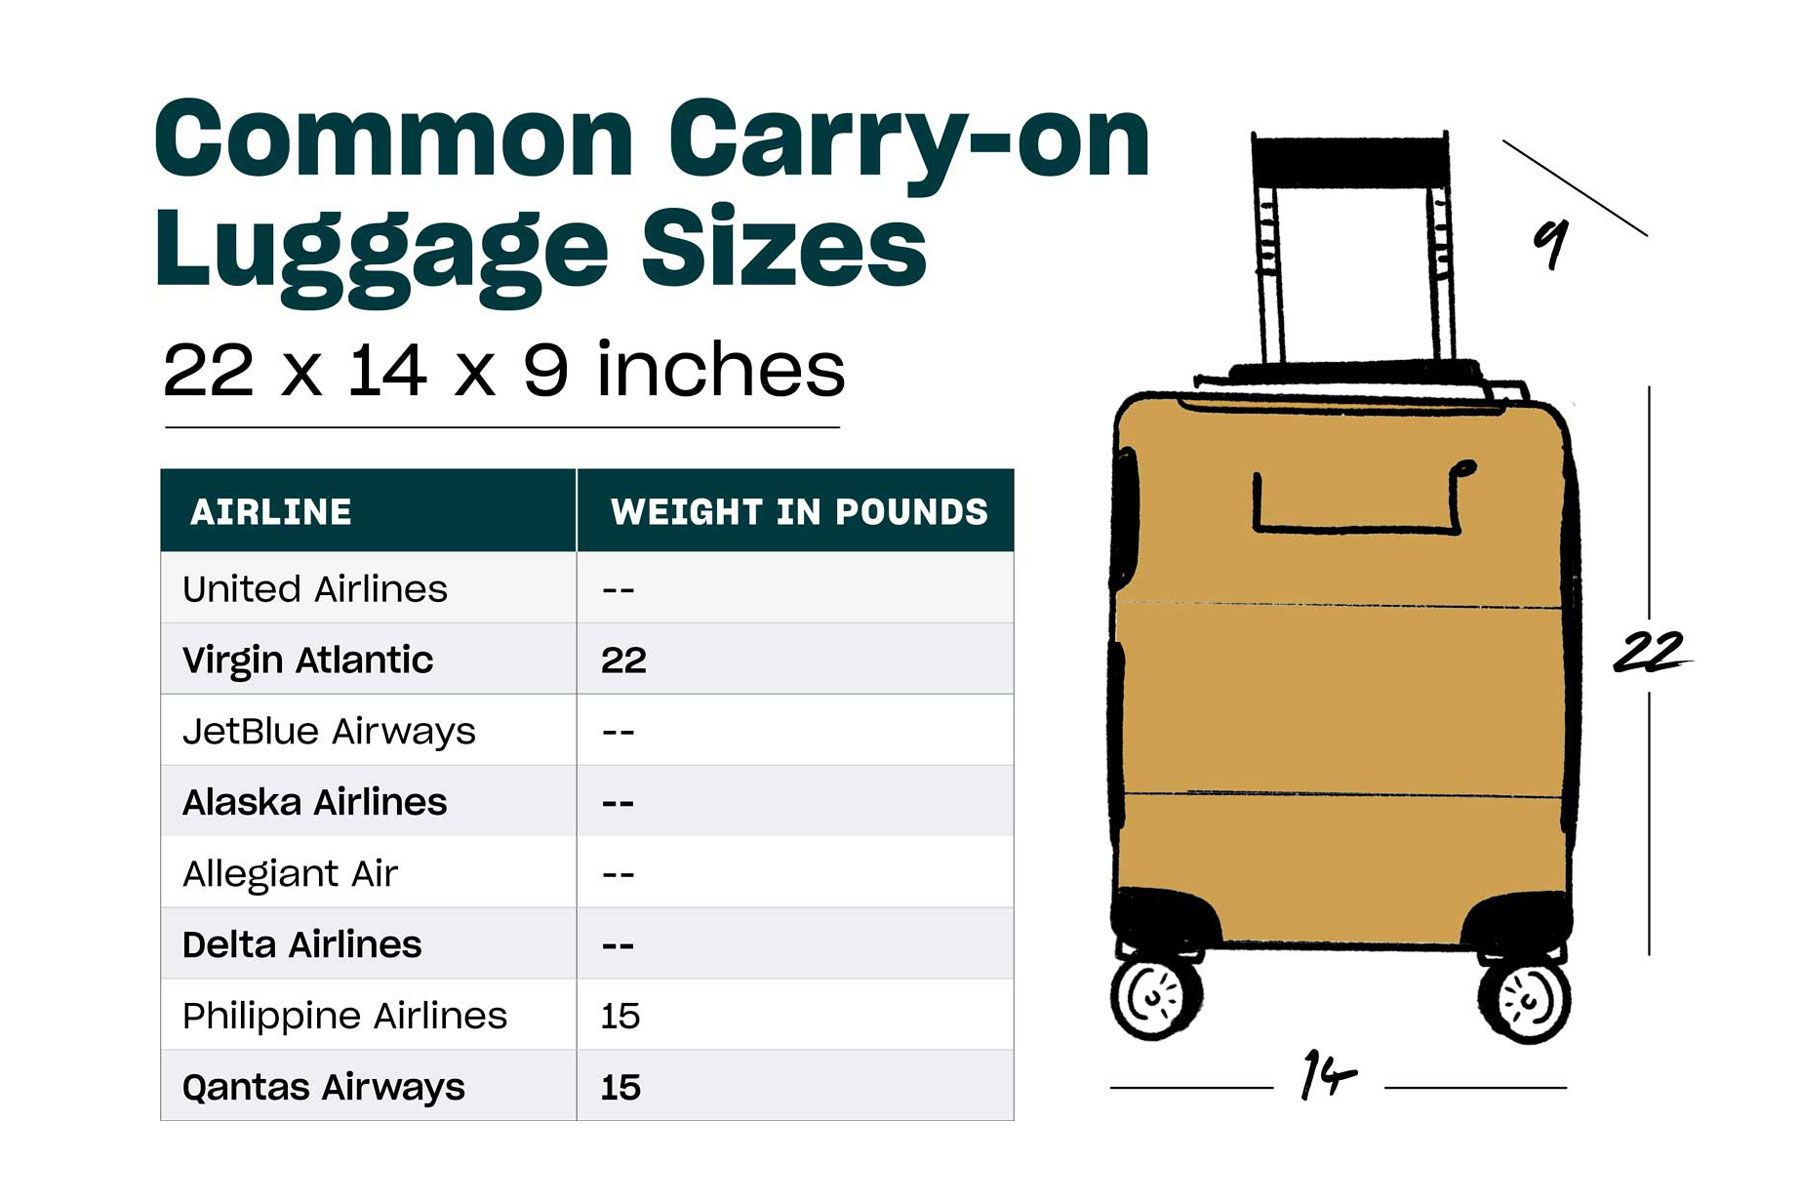 A Carry On Luggage Size Guide By Airline Luggage Sizes Packing Tips For Travel Luggage